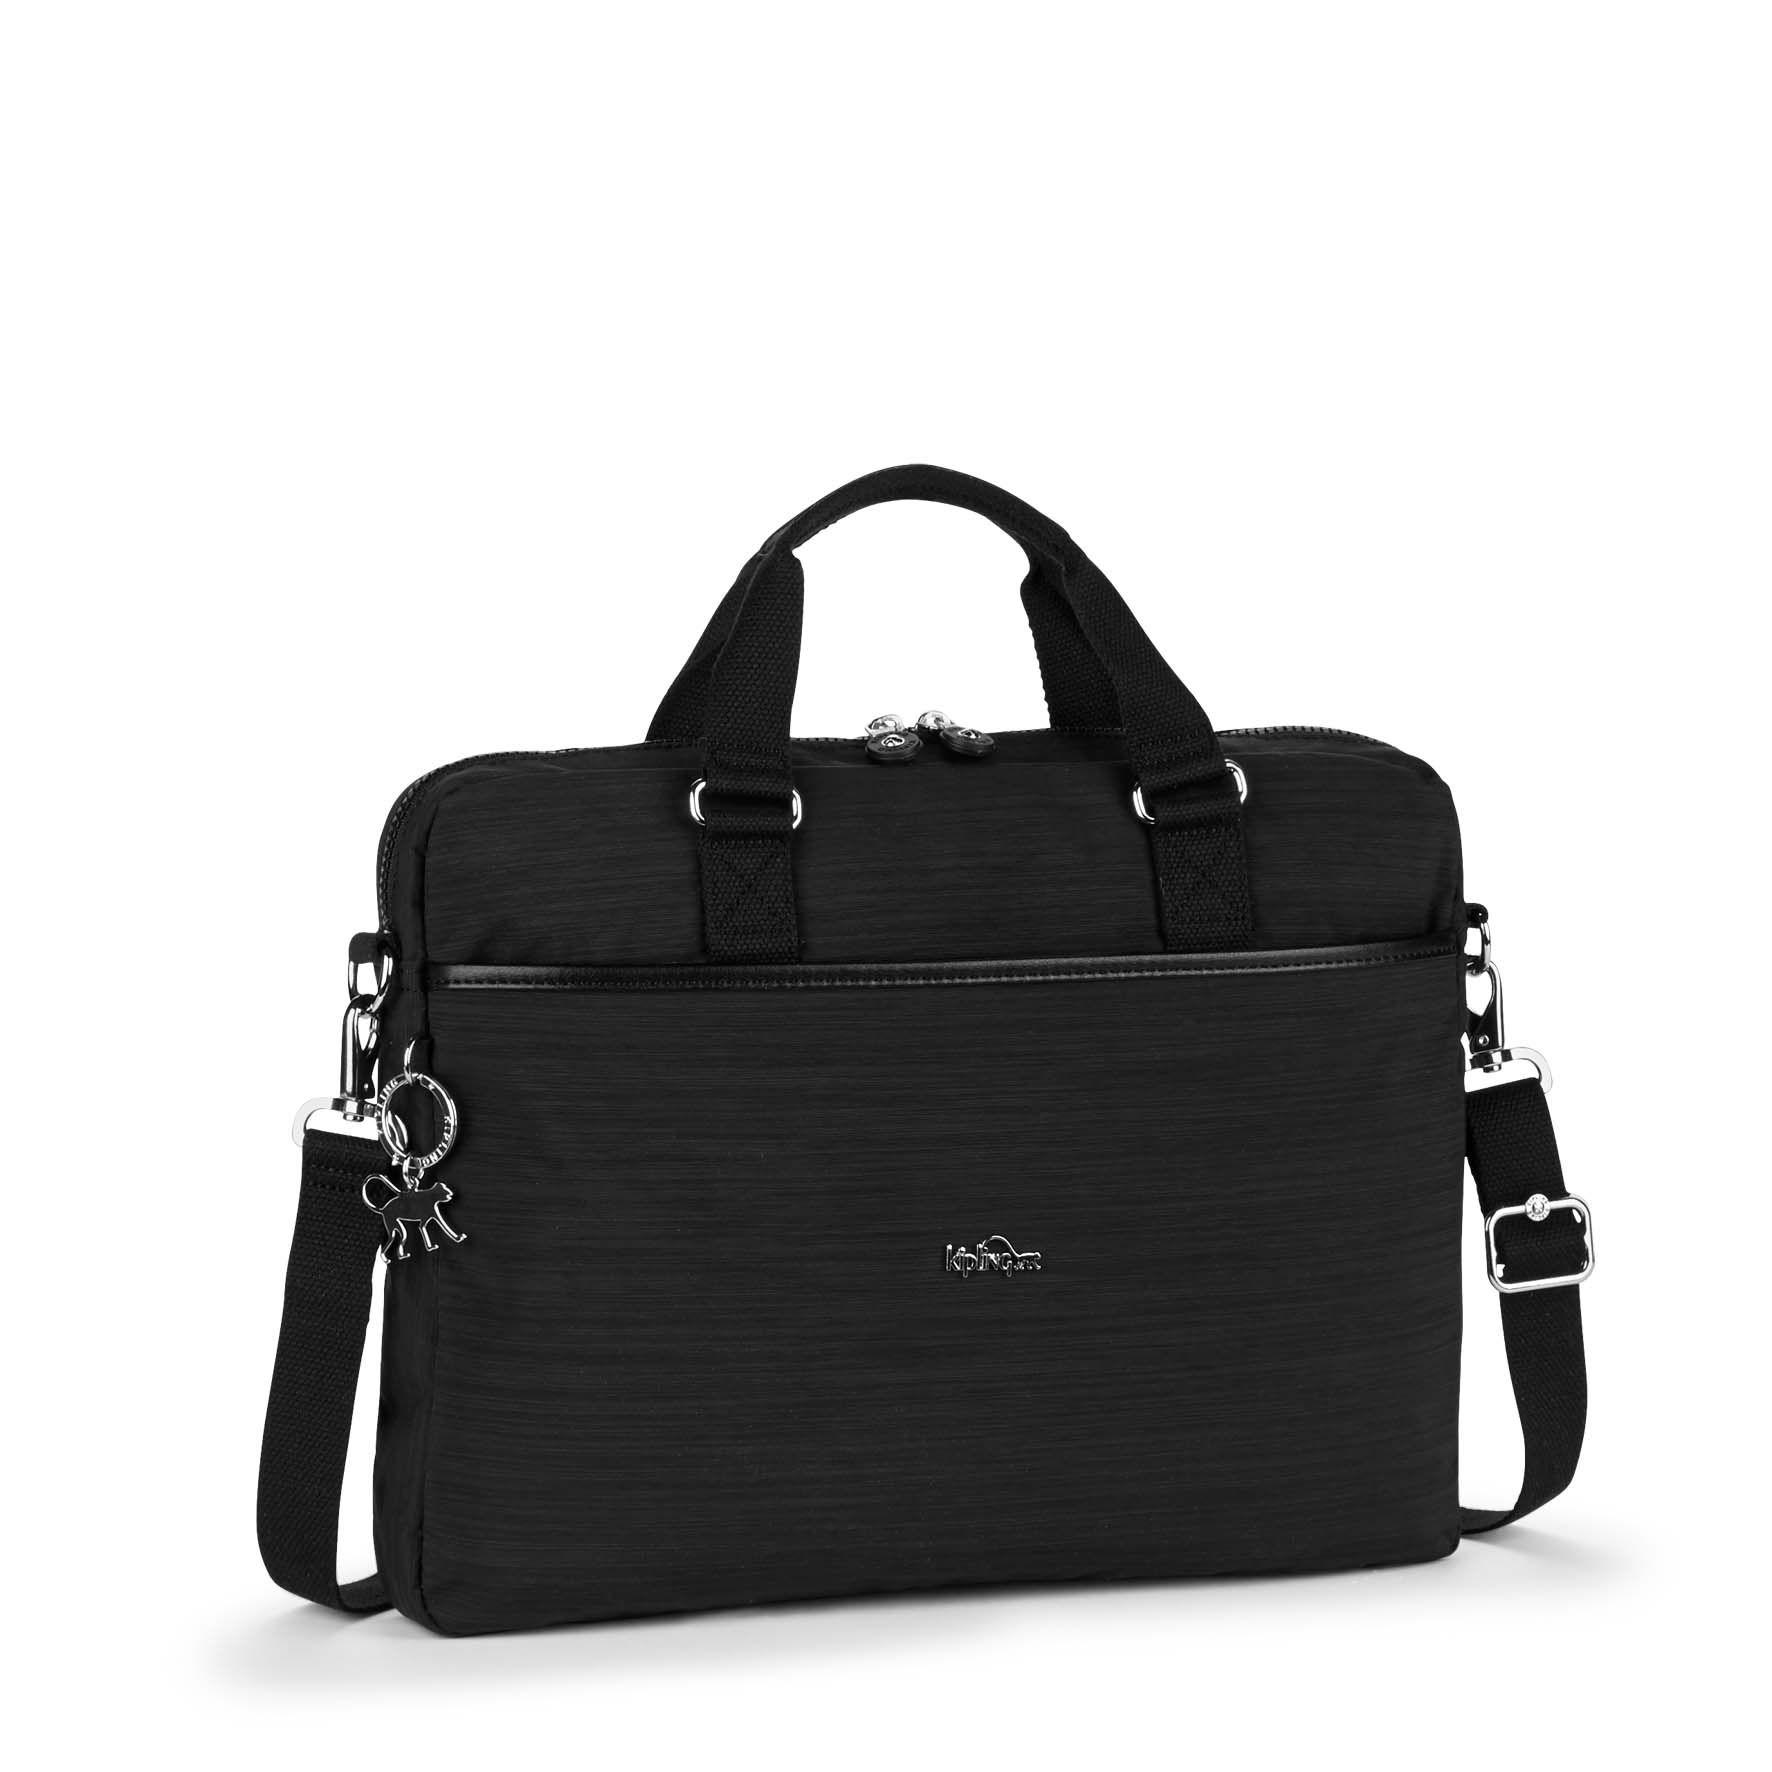 c5c85e2ac35e7c Kipling Kaitlyn Kw Removable Strap Computer Bag in Black - Lyst